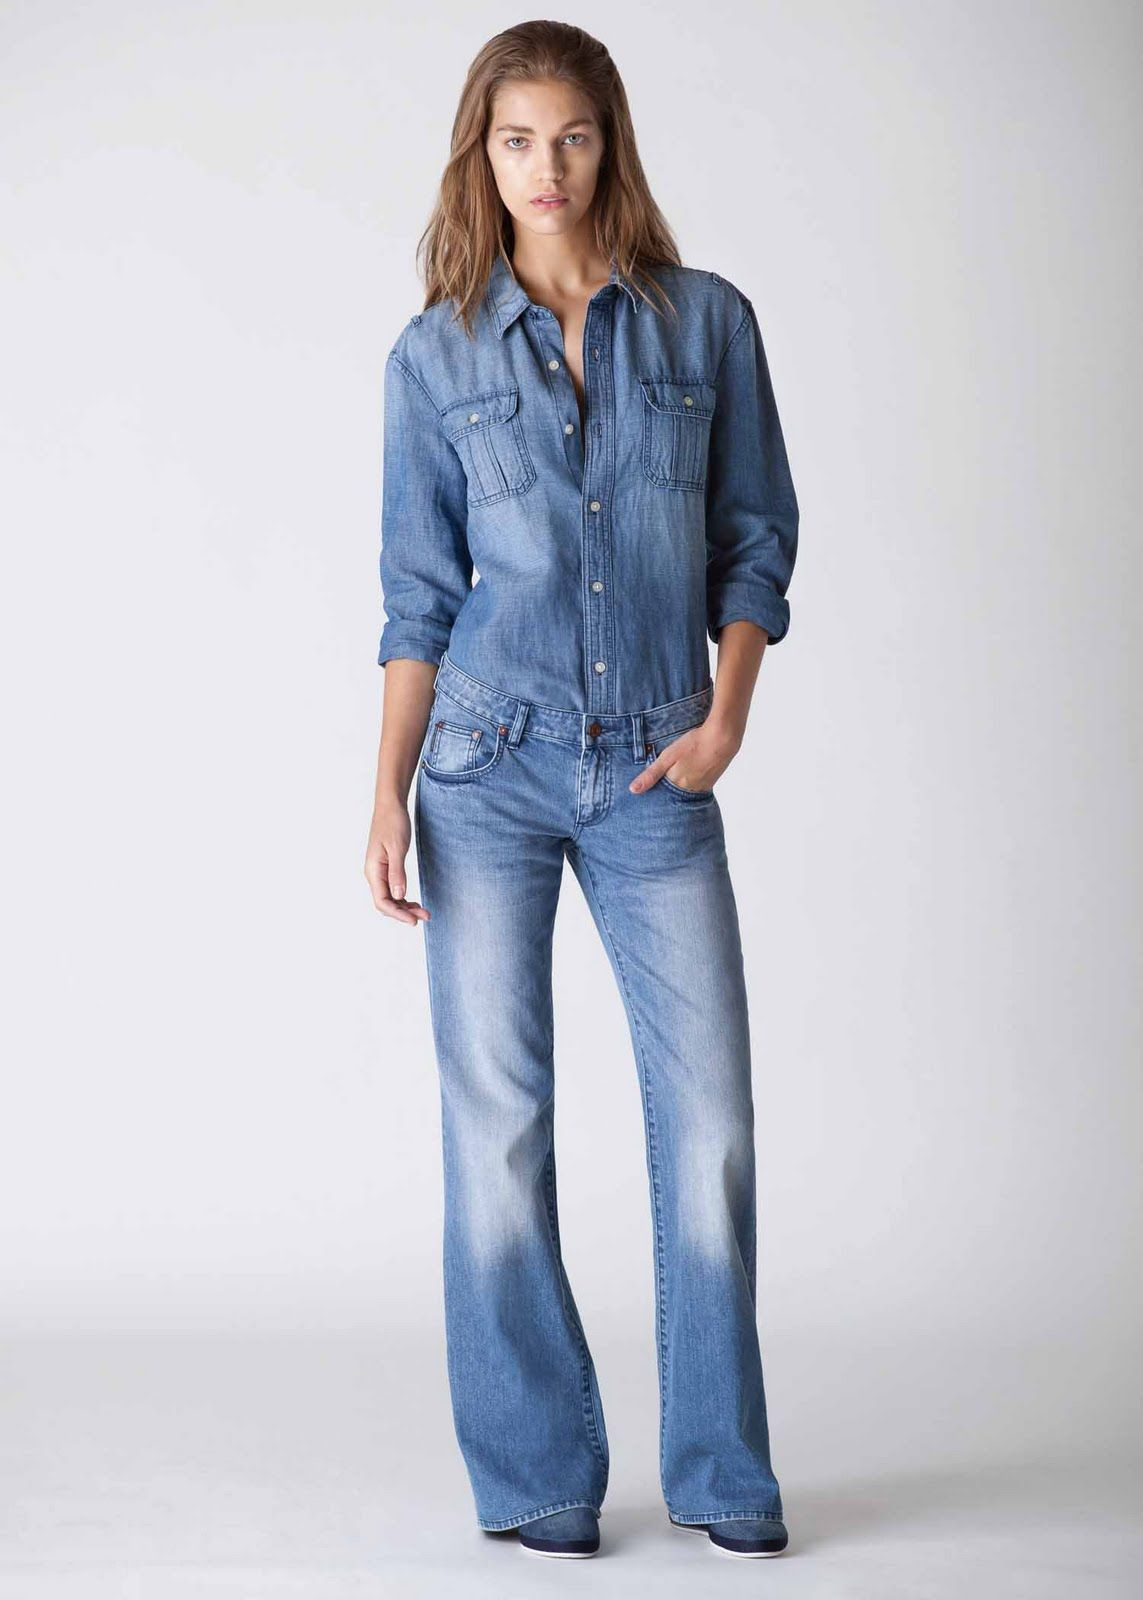 Images of Jean Shirts For Women - Reikian